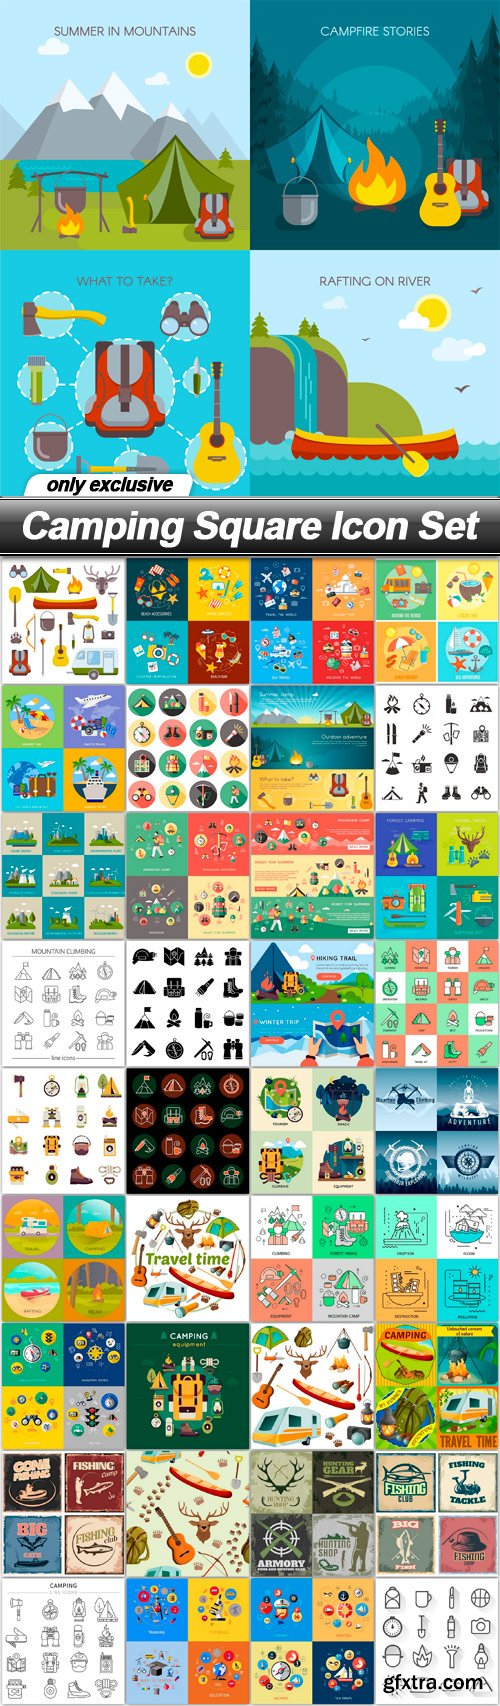 Camping Square Icon Set - 37 EPS